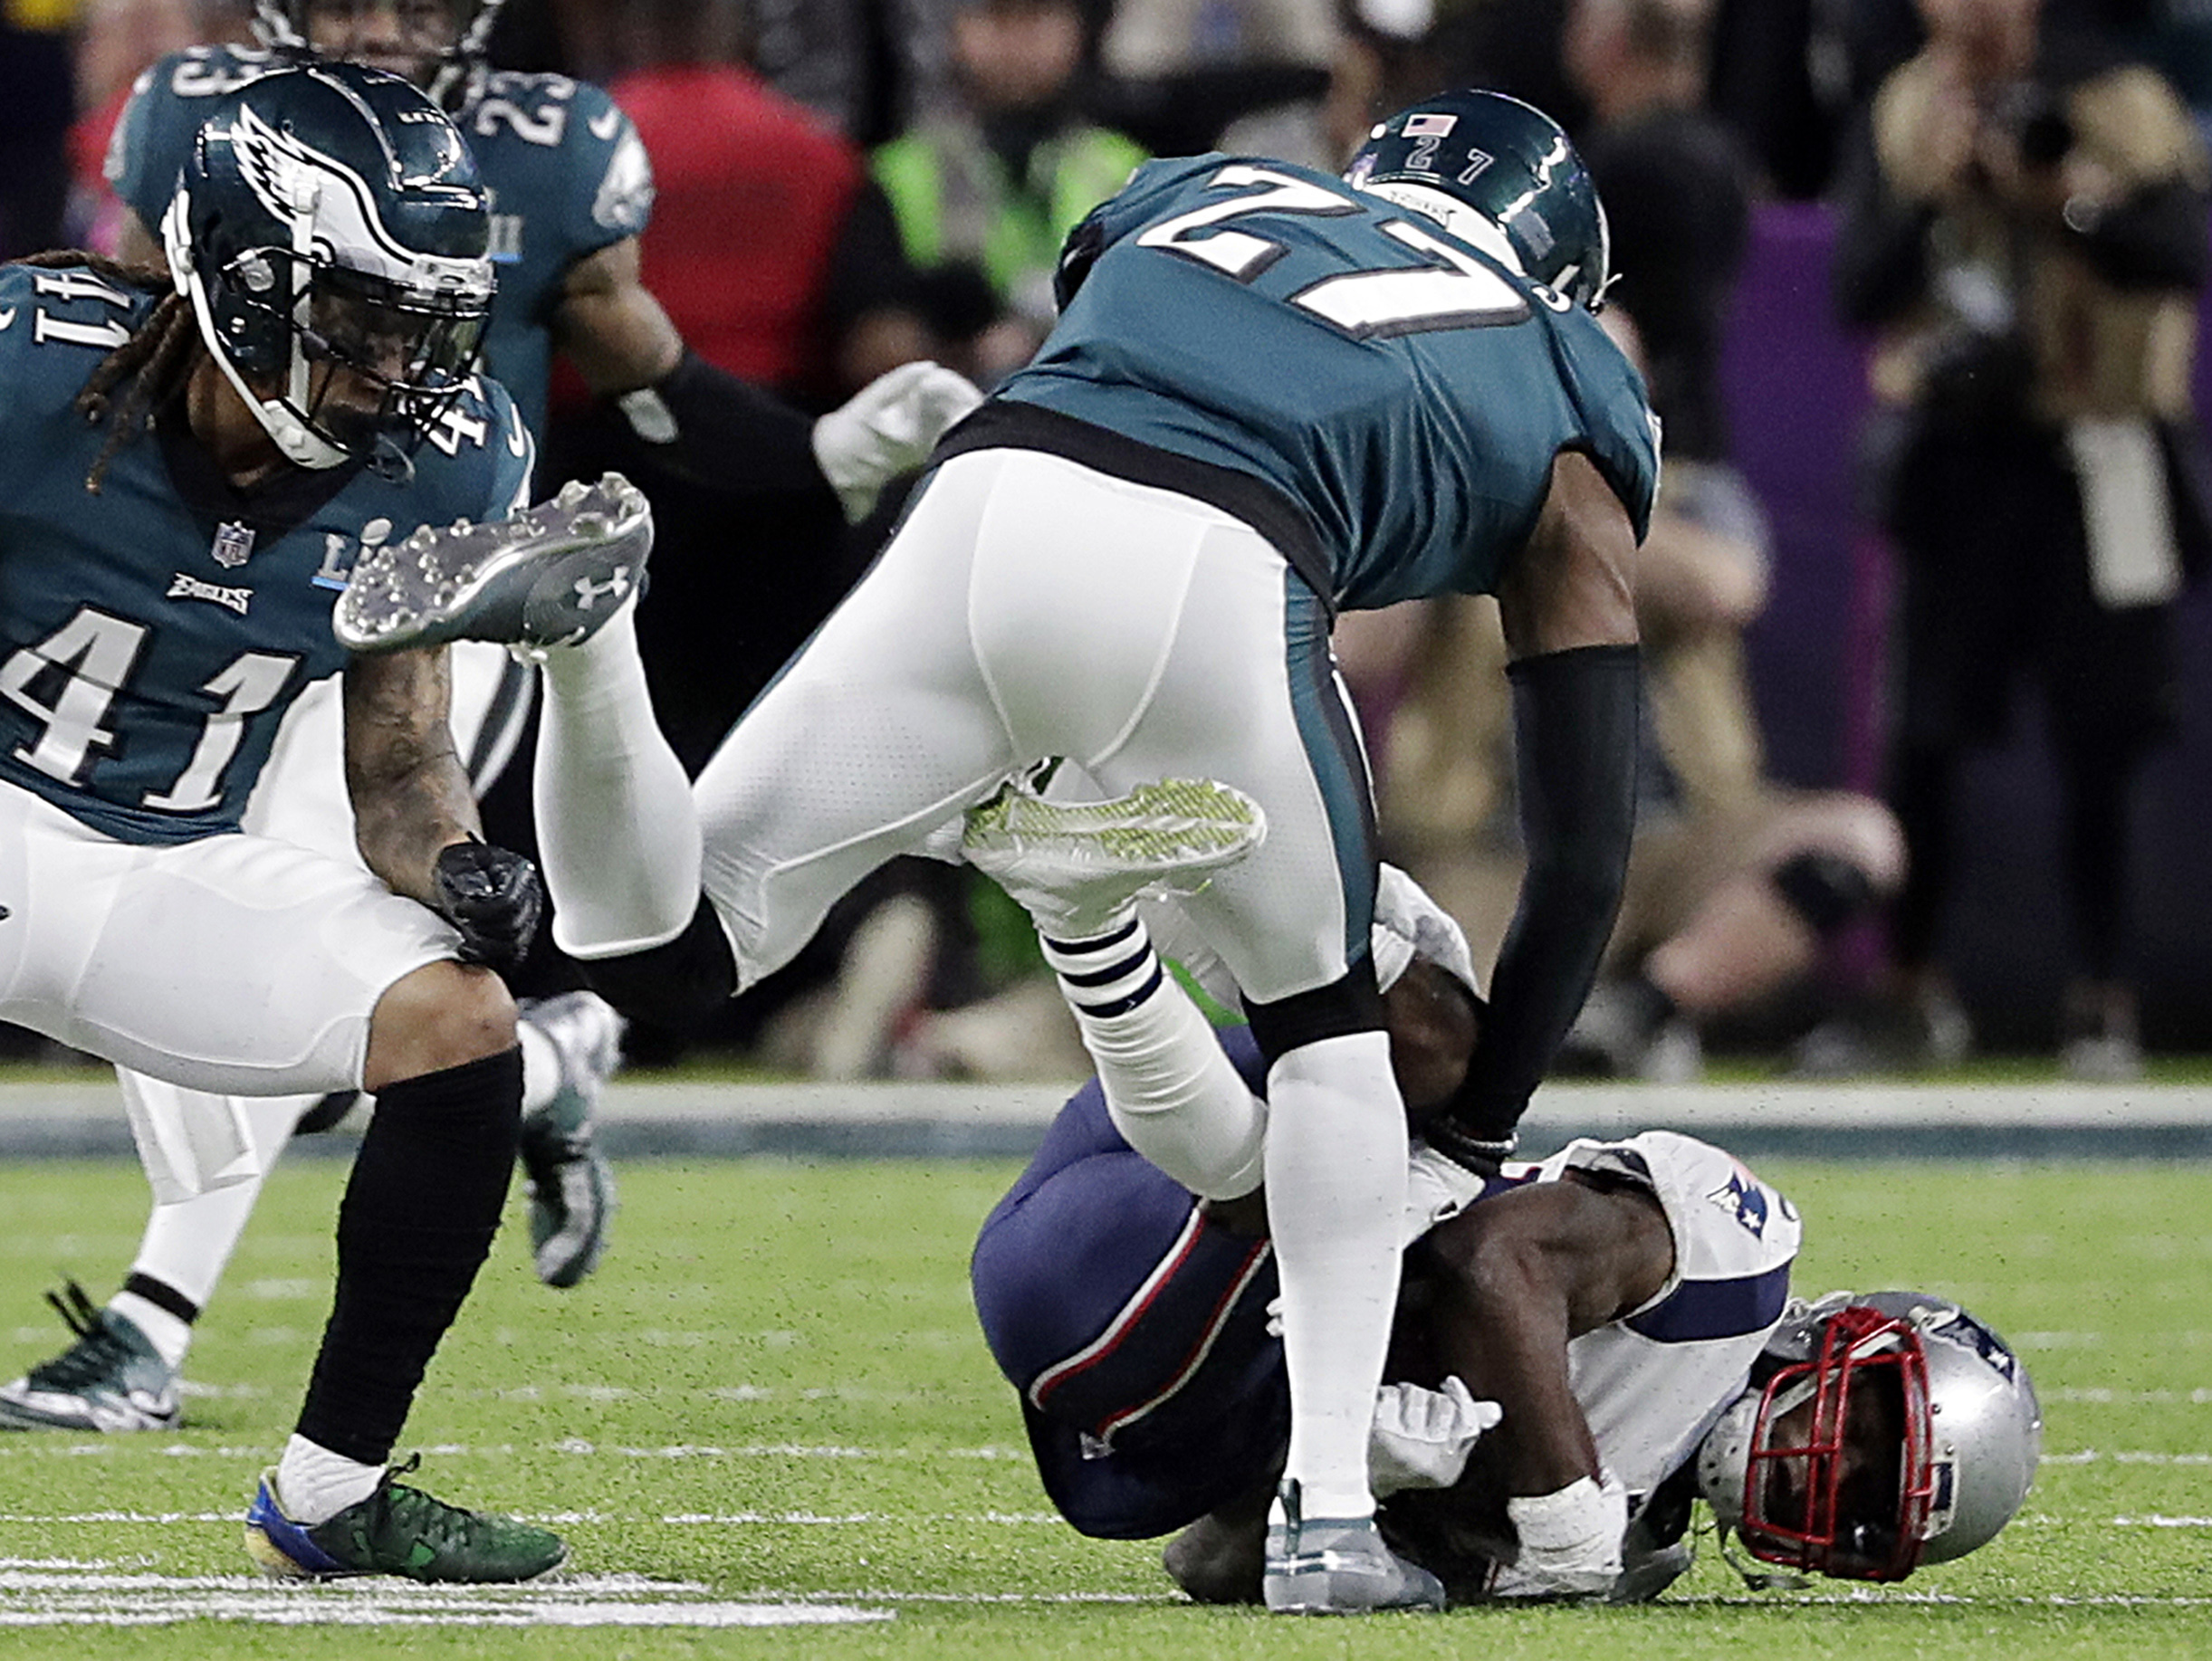 "<div class=""meta image-caption""><div class=""origin-logo origin-image ap""><span>AP</span></div><span class=""caption-text"">New England Patriots wide receiver Brandin Cooks (14), falls after colliding with Philadelphia Eagles strong safety Malcolm Jenkins (27). (AP Photo/Tony Gutierrez)</span></div>"